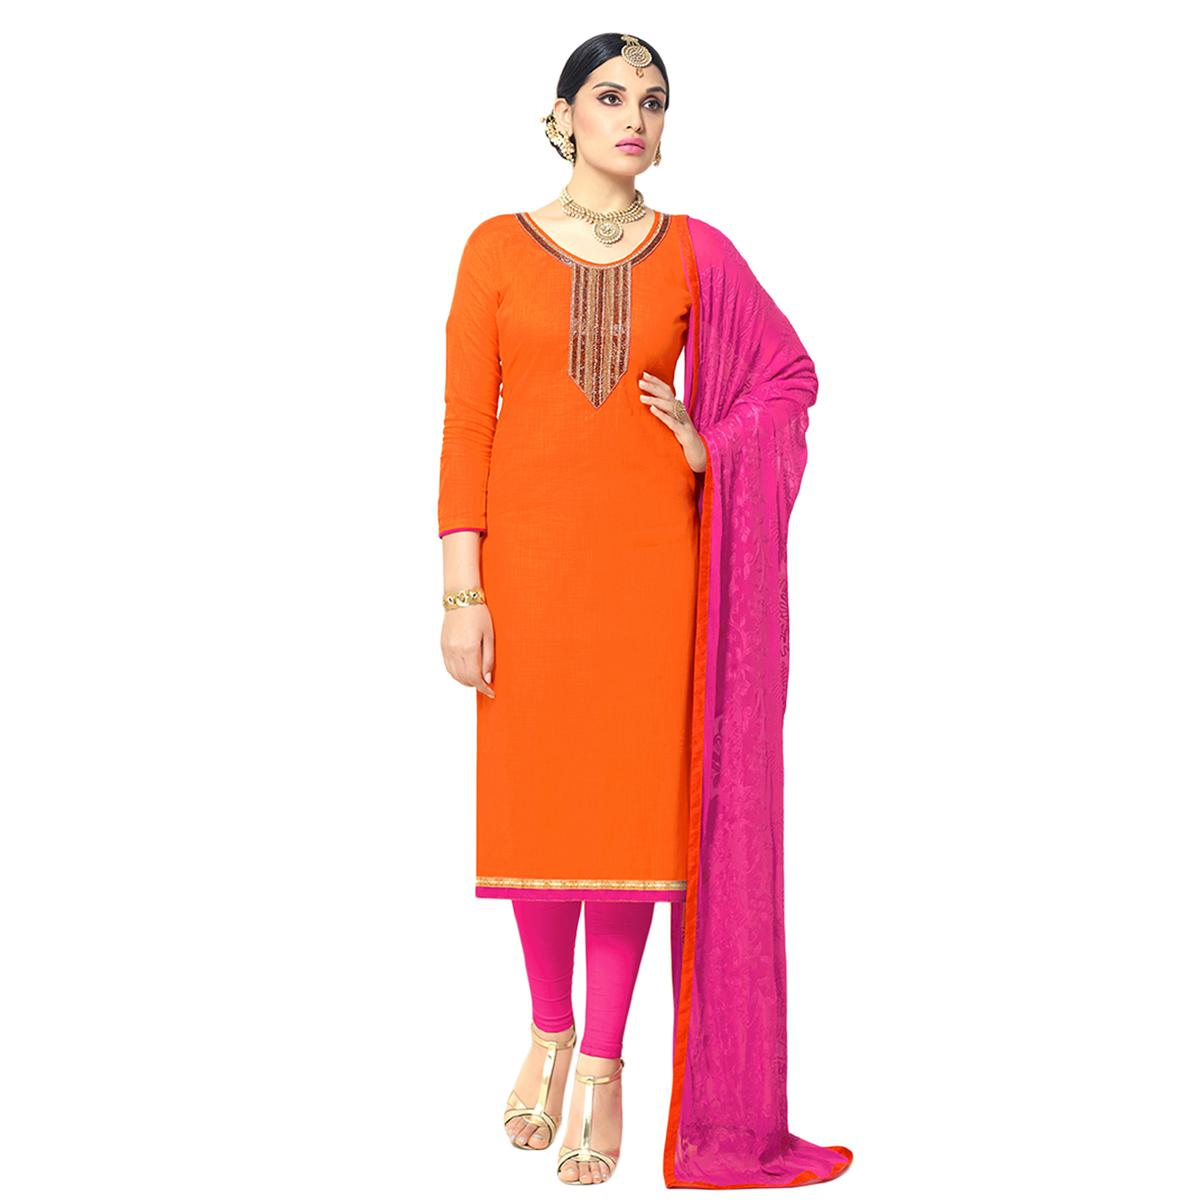 d2b06c3d30 Buy Traditional Orange Colored Partywear Embroidered Cotton Silk Dress  Material for womens online India, Best Prices, Reviews - Peachmode